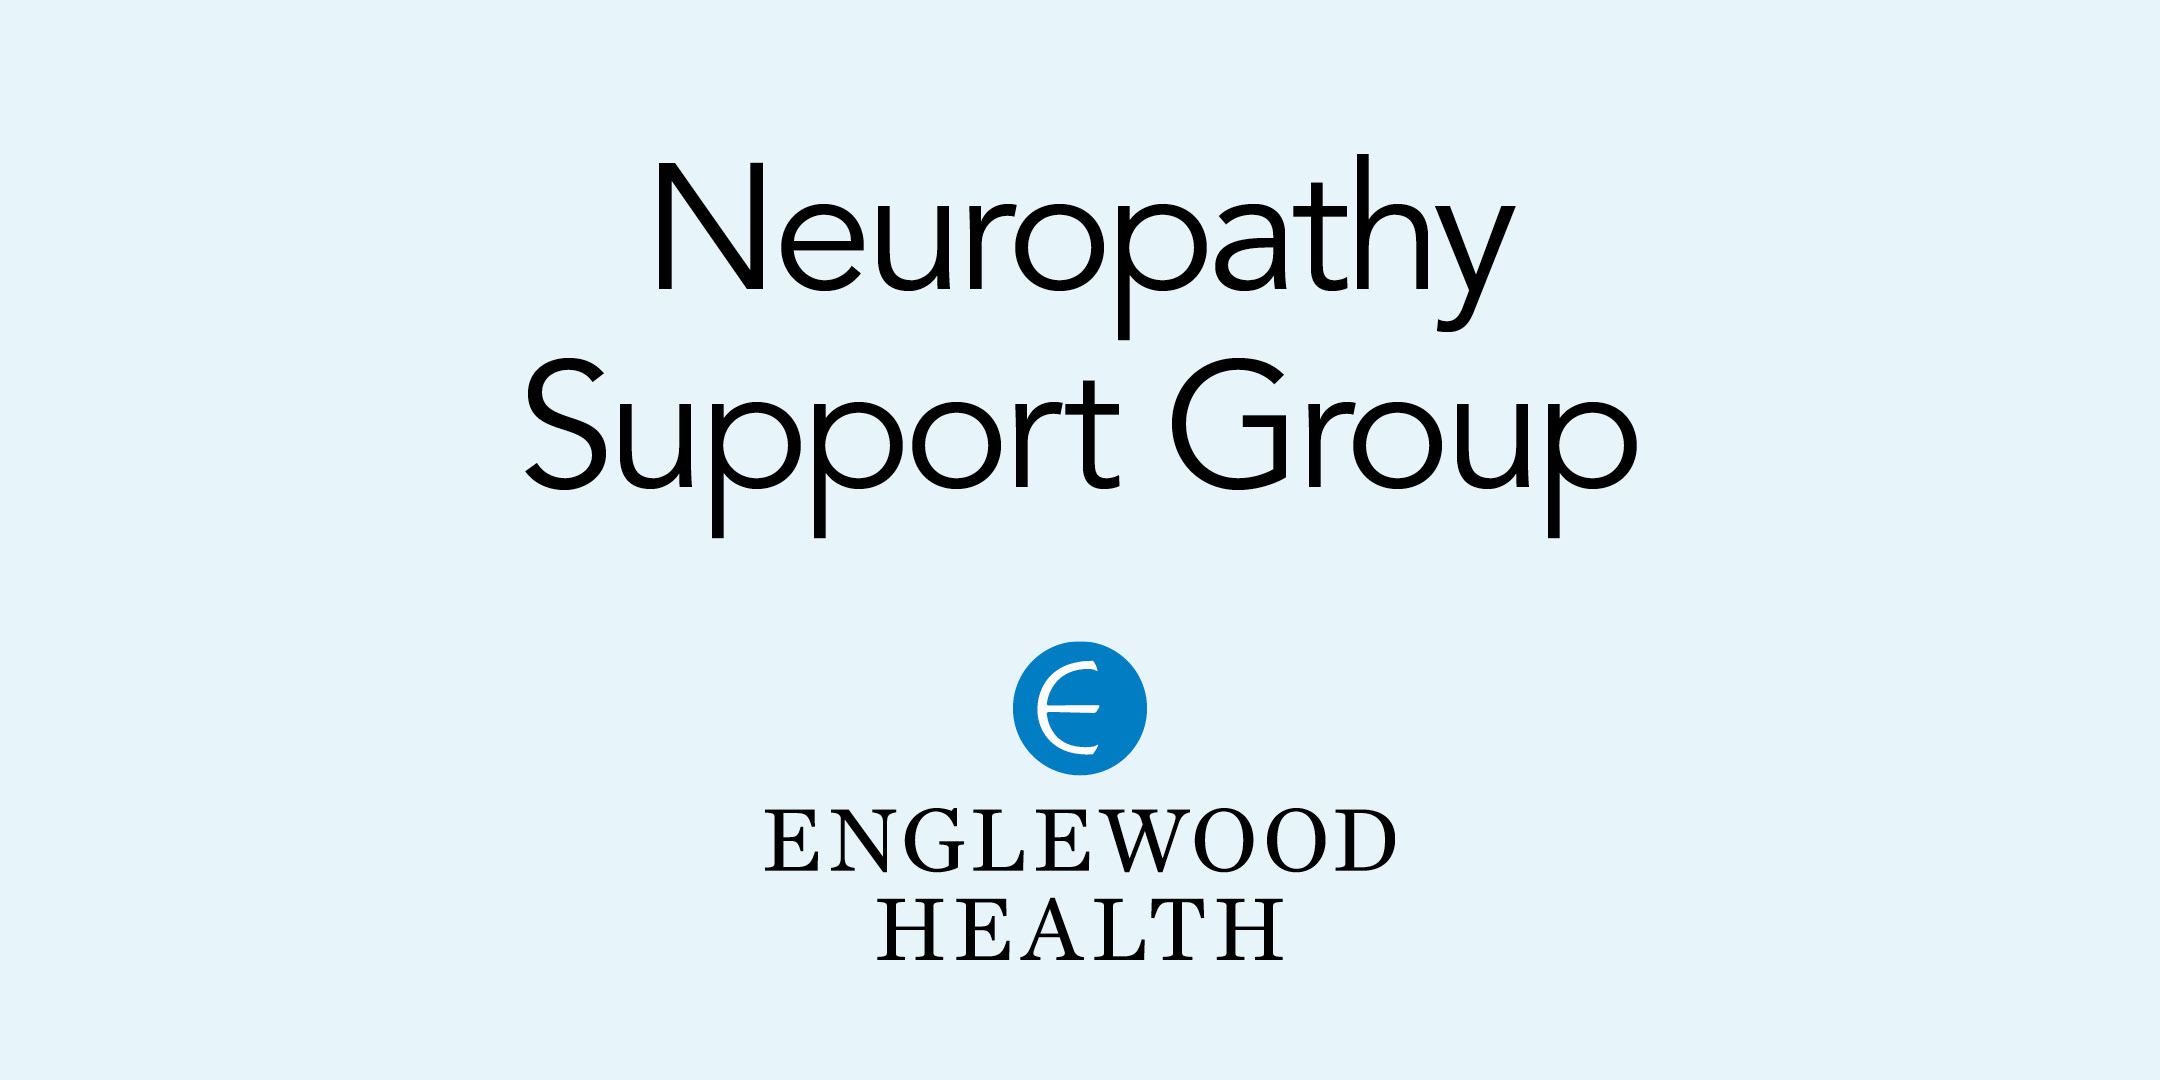 More info: Neuropathy Support Group